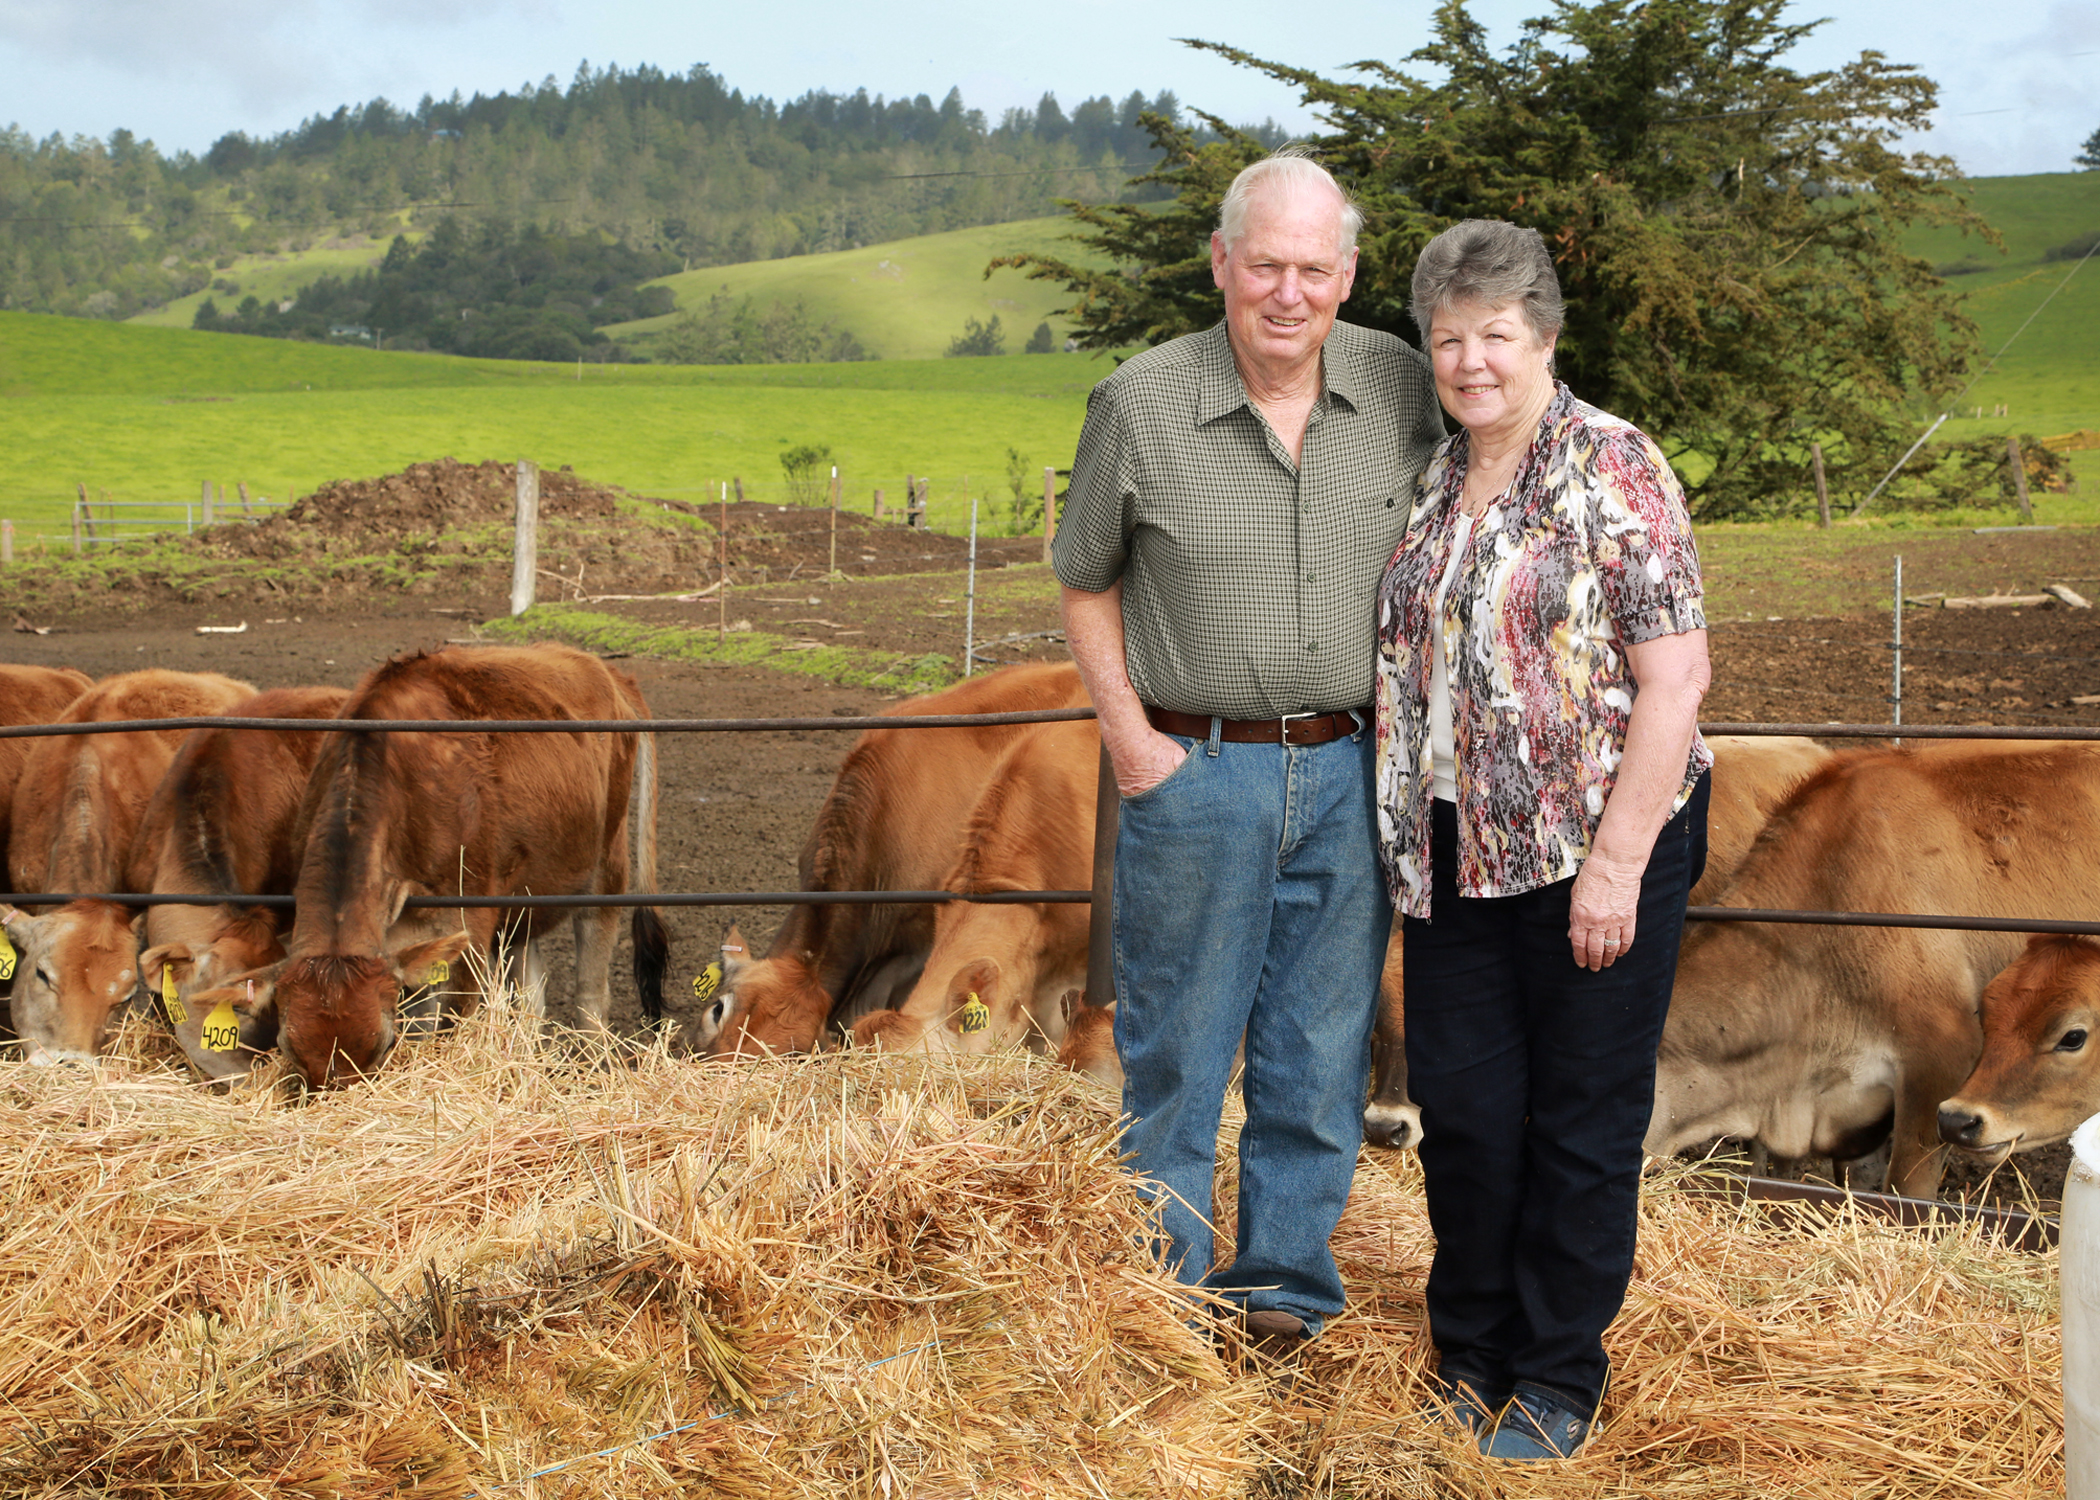 Richard & Marilyn Hughes - Sonoma County Fair Award Winner